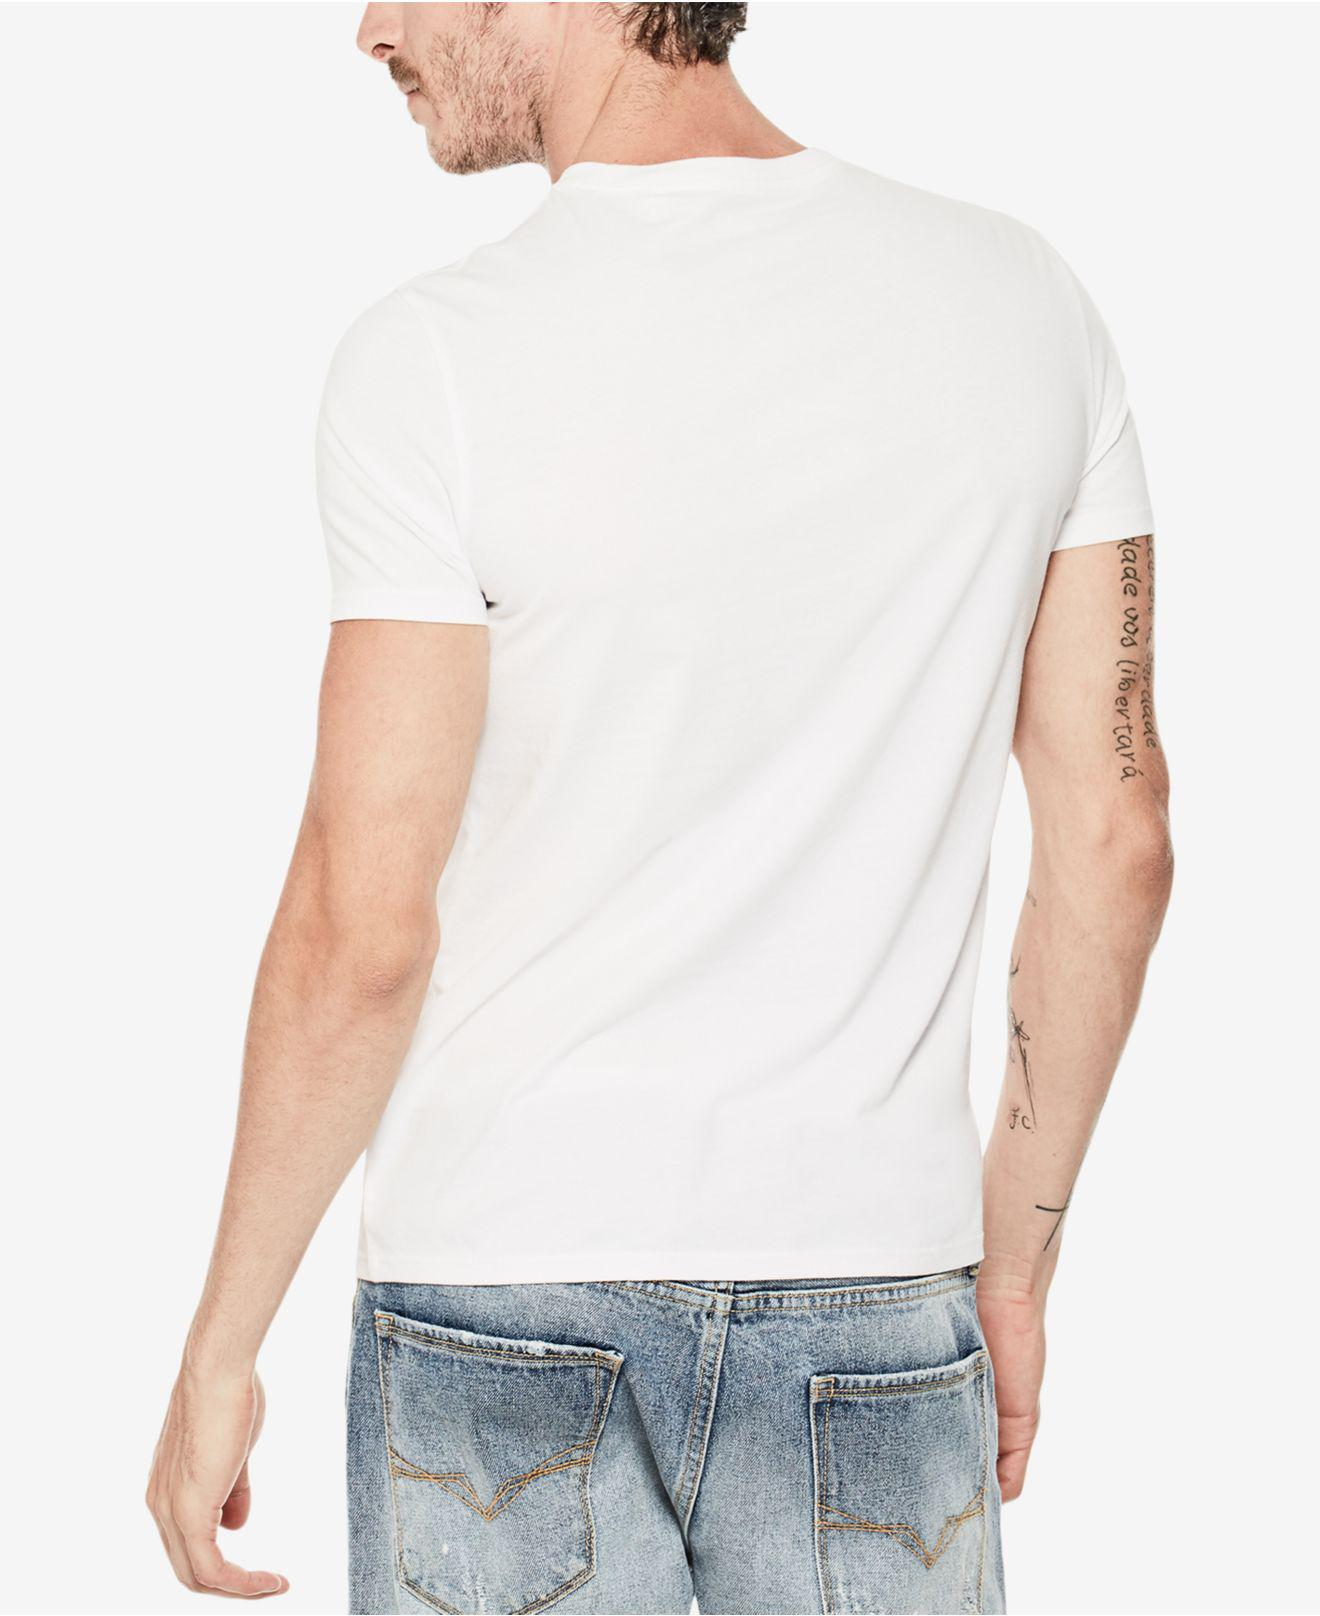 66ac9a37 Guess Classic Logo T-shirt in White for Men - Lyst